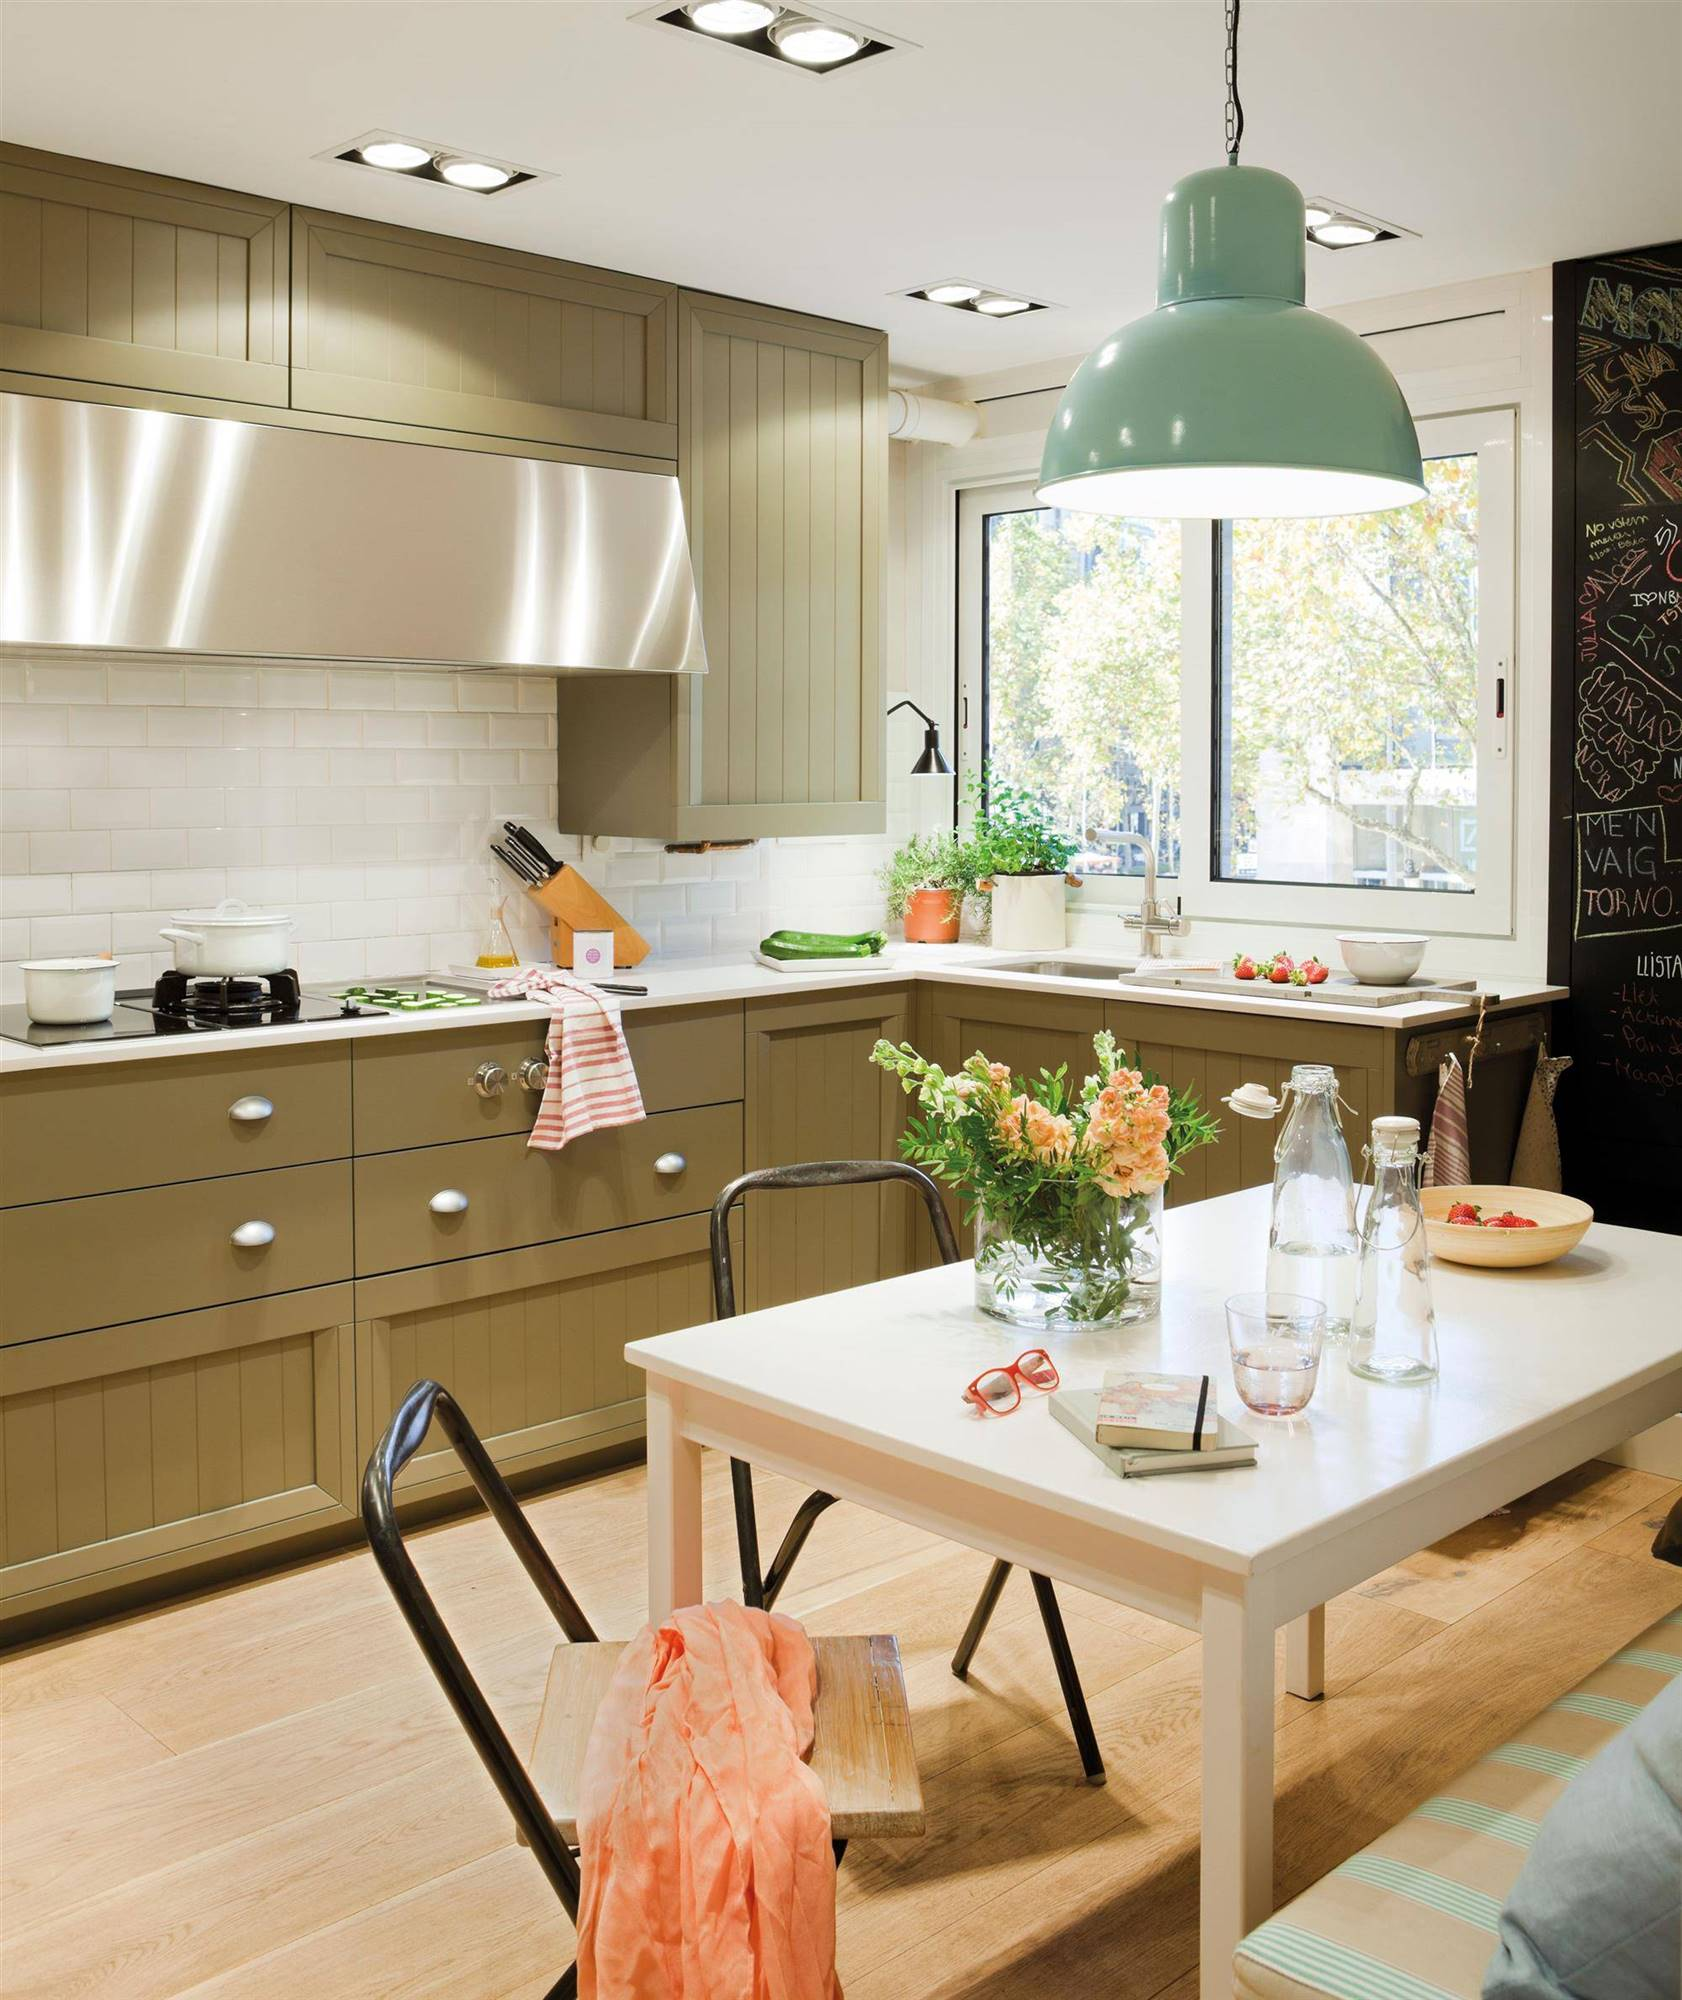 00381806. How much does it cost to put parquet in the kitchen?